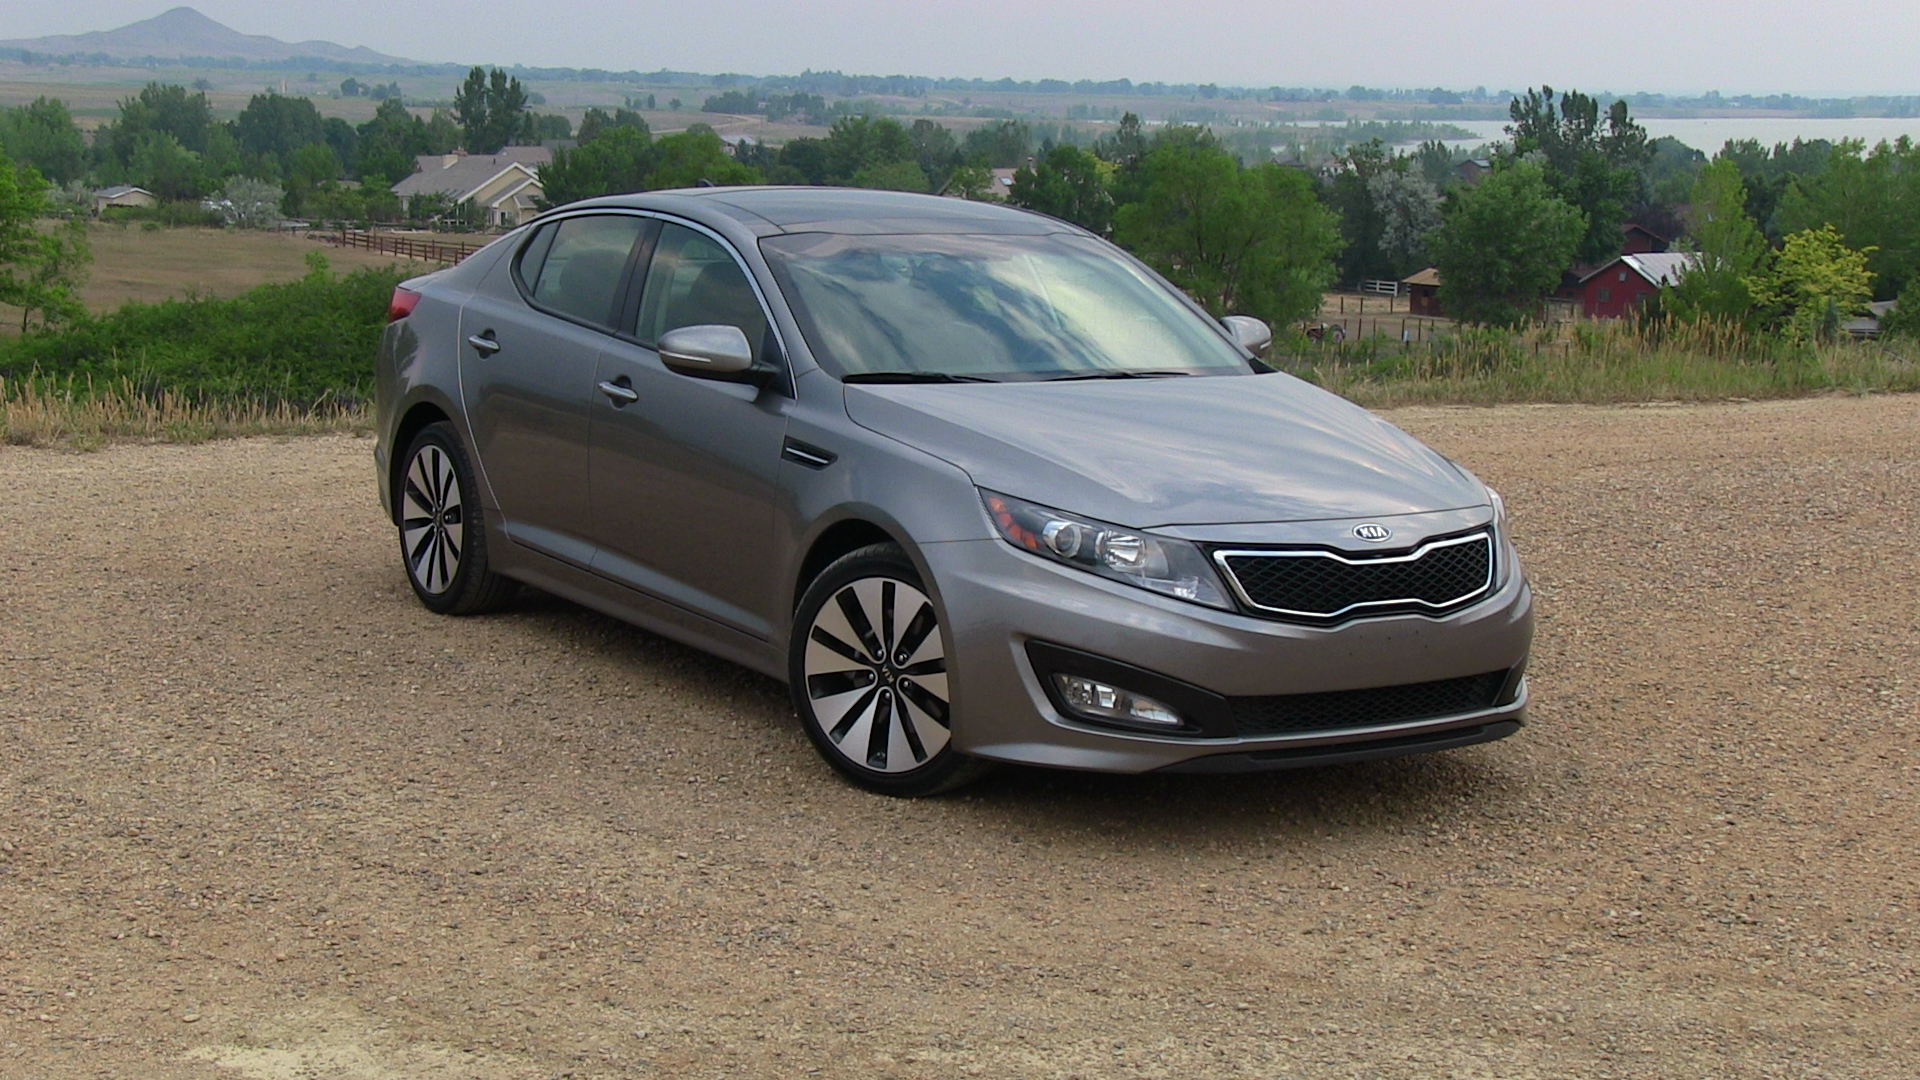 IMG_0530. The 2012 KIA Optima SX Turbo ...